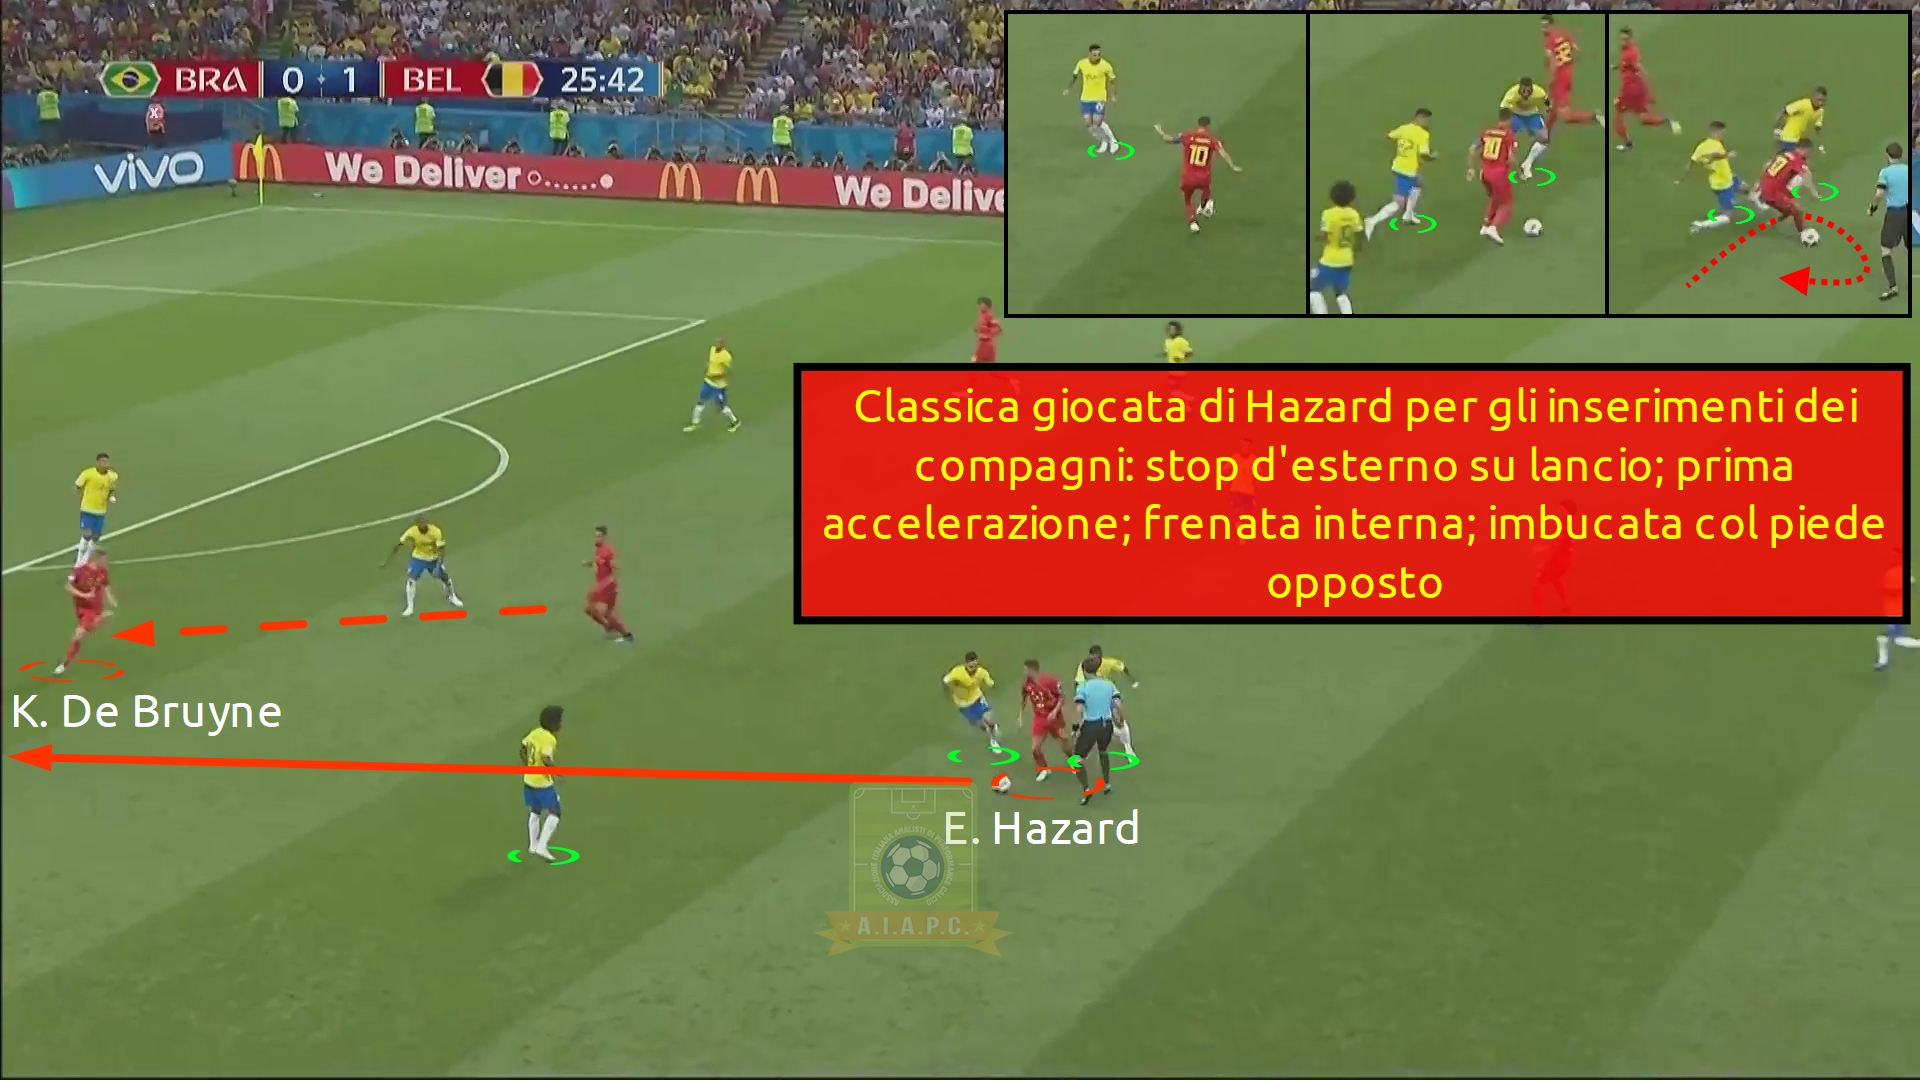 tattica di hazard